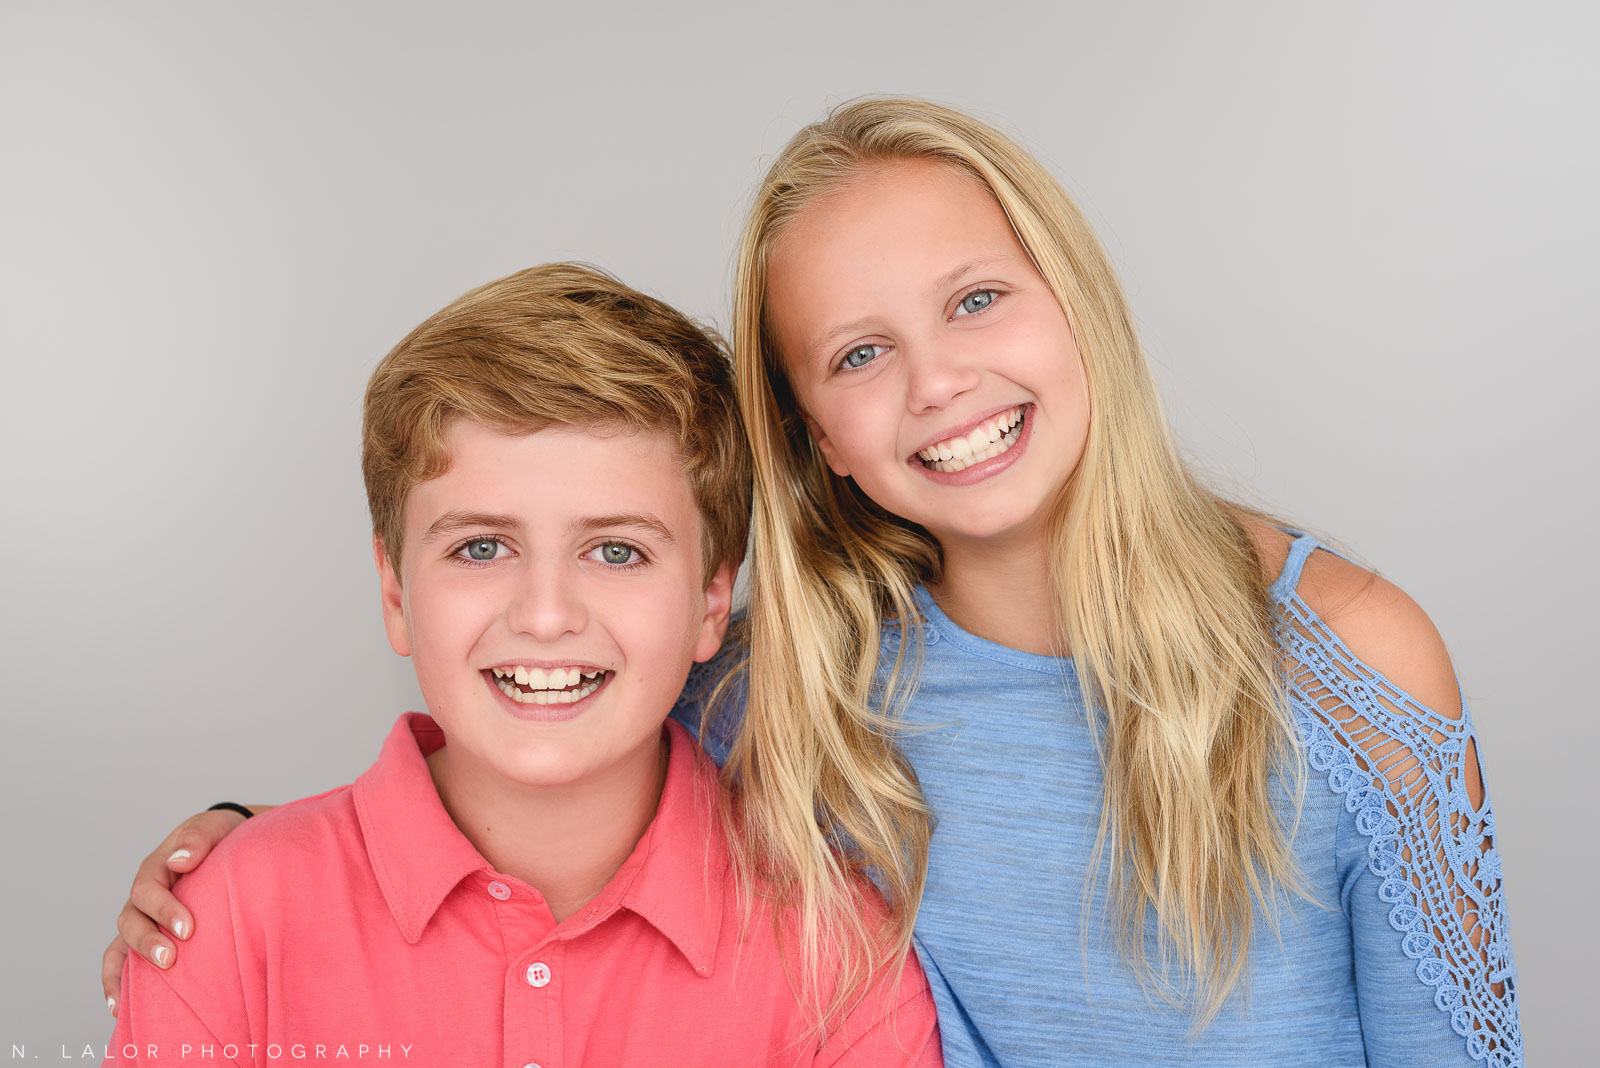 Twins! Studio family photo session with N. Lalor Photography in Greenwich, Connecticut.